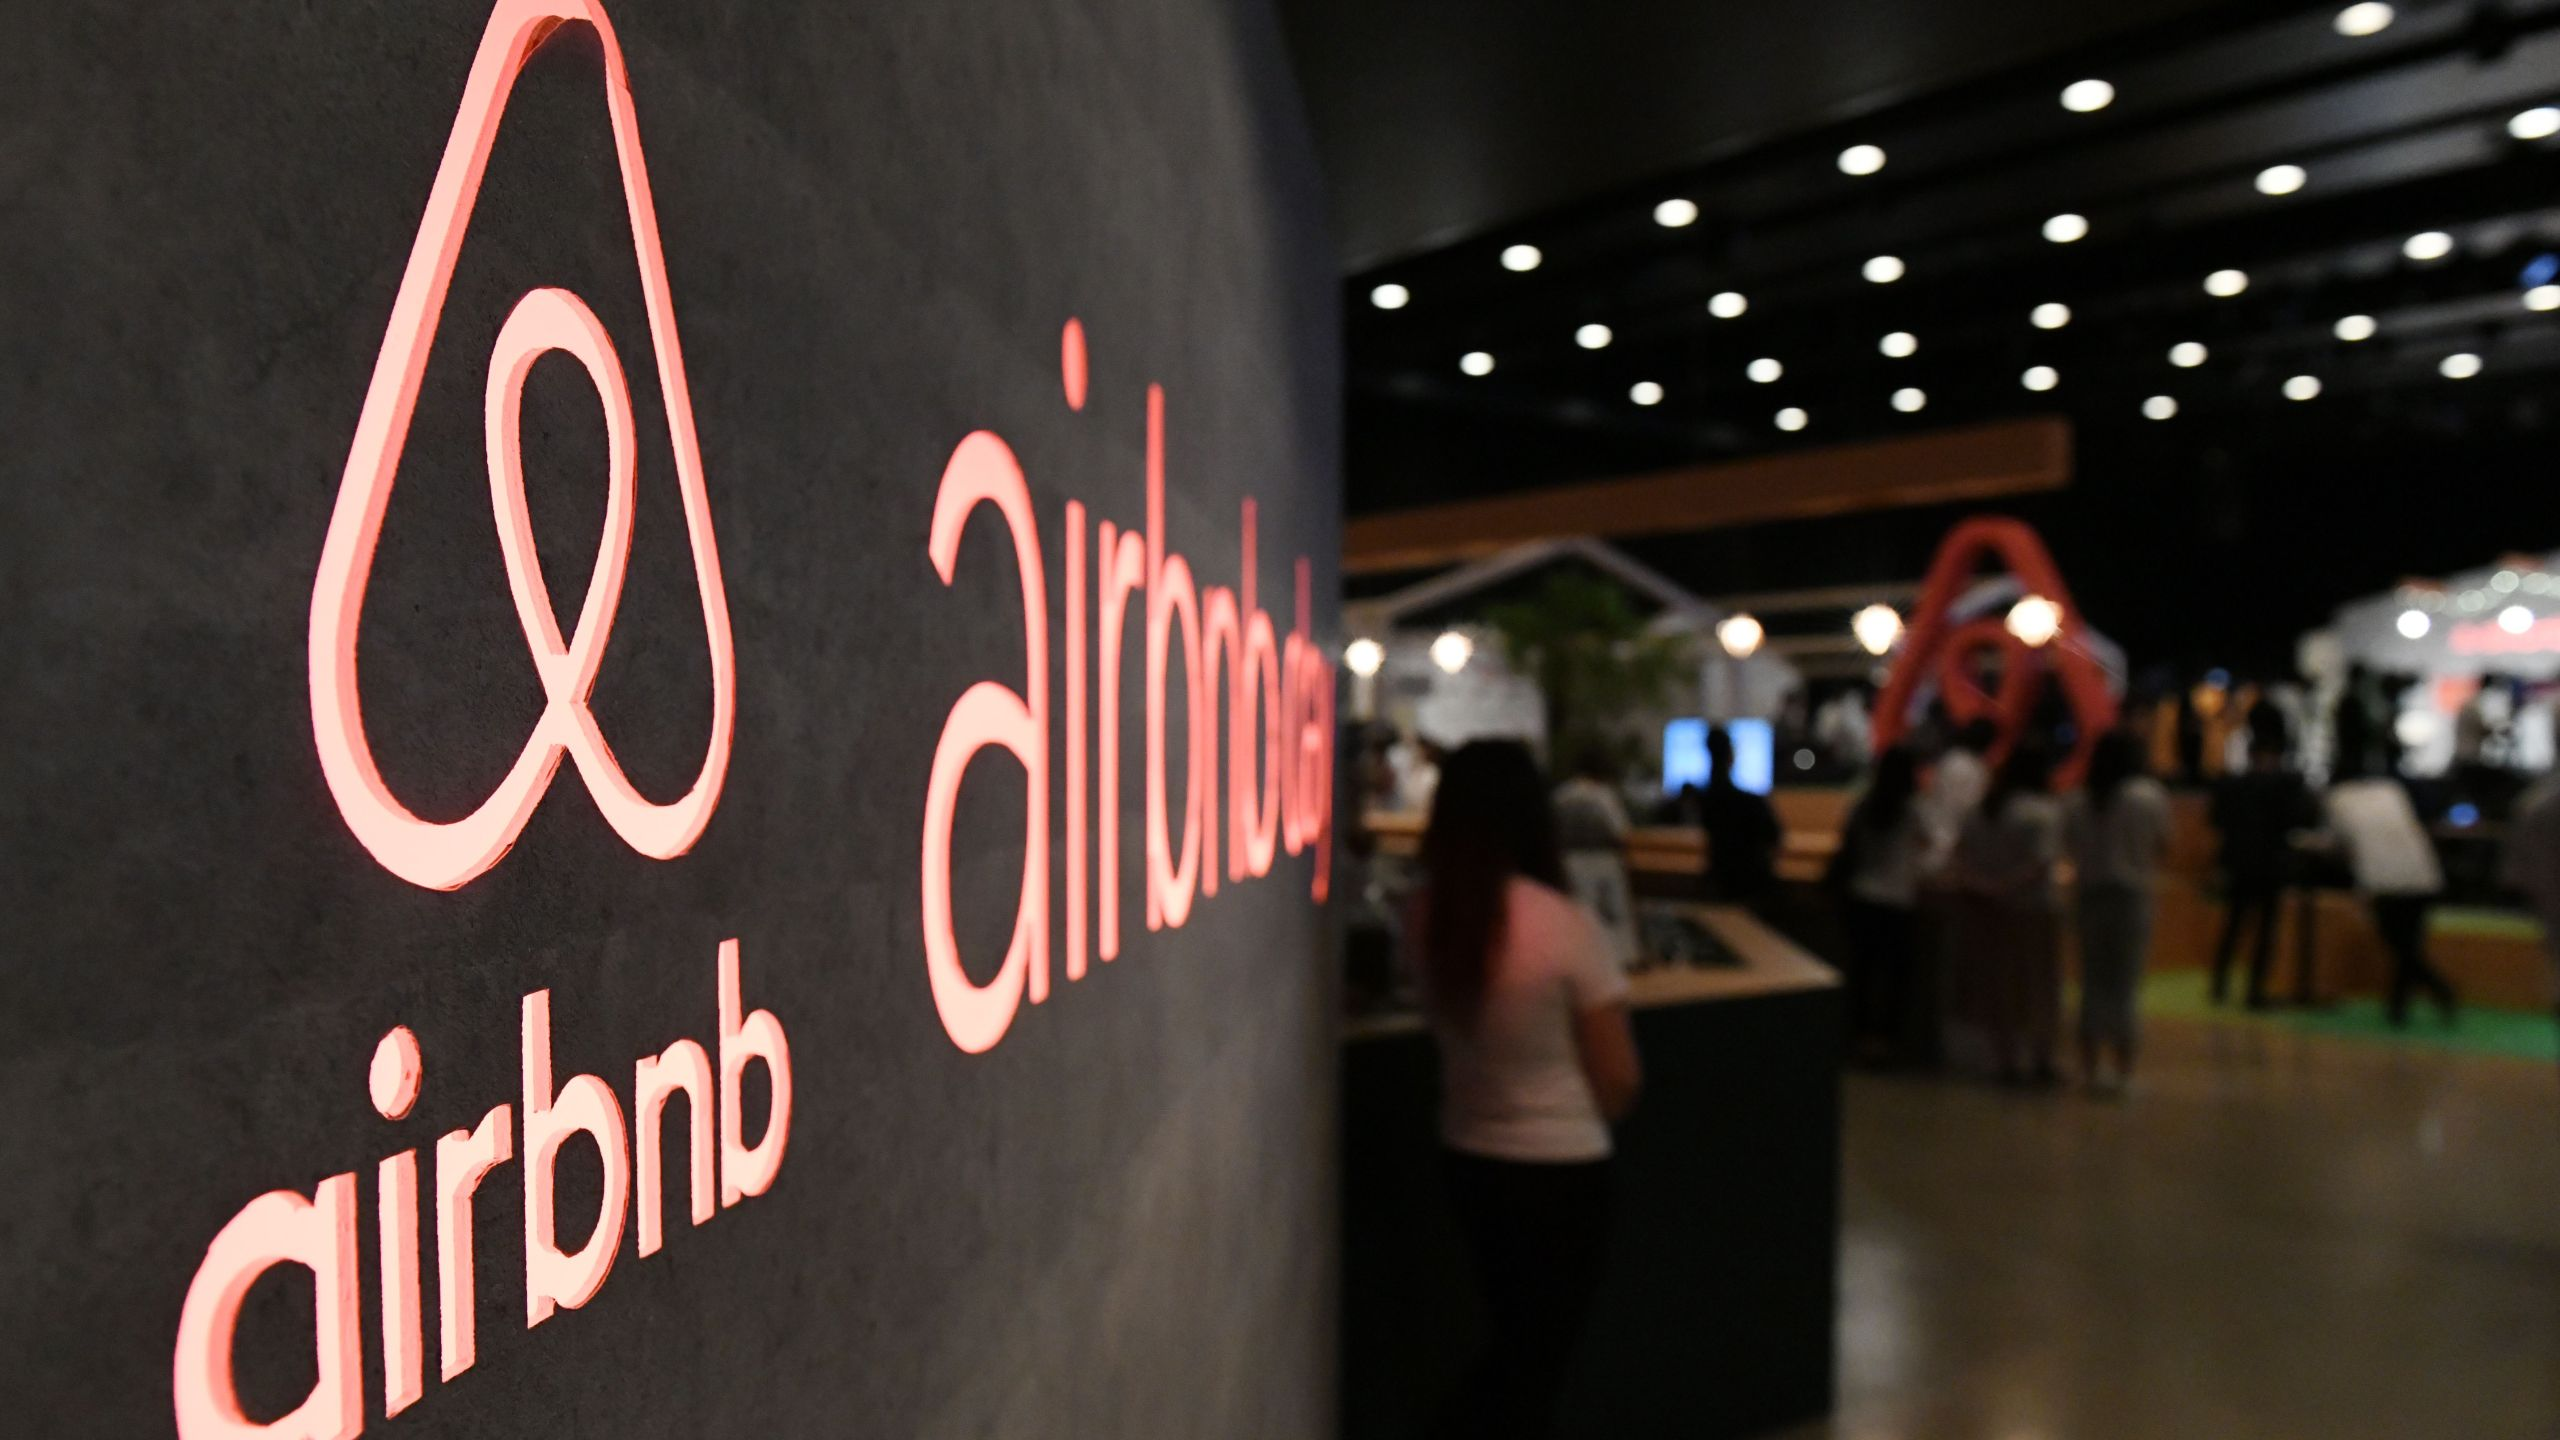 Airbnb's logo is displayed during the company's press conference in Tokyo on June 14, 2018. (TOSHIFUMI KITAMURA/AFP via Getty Images)